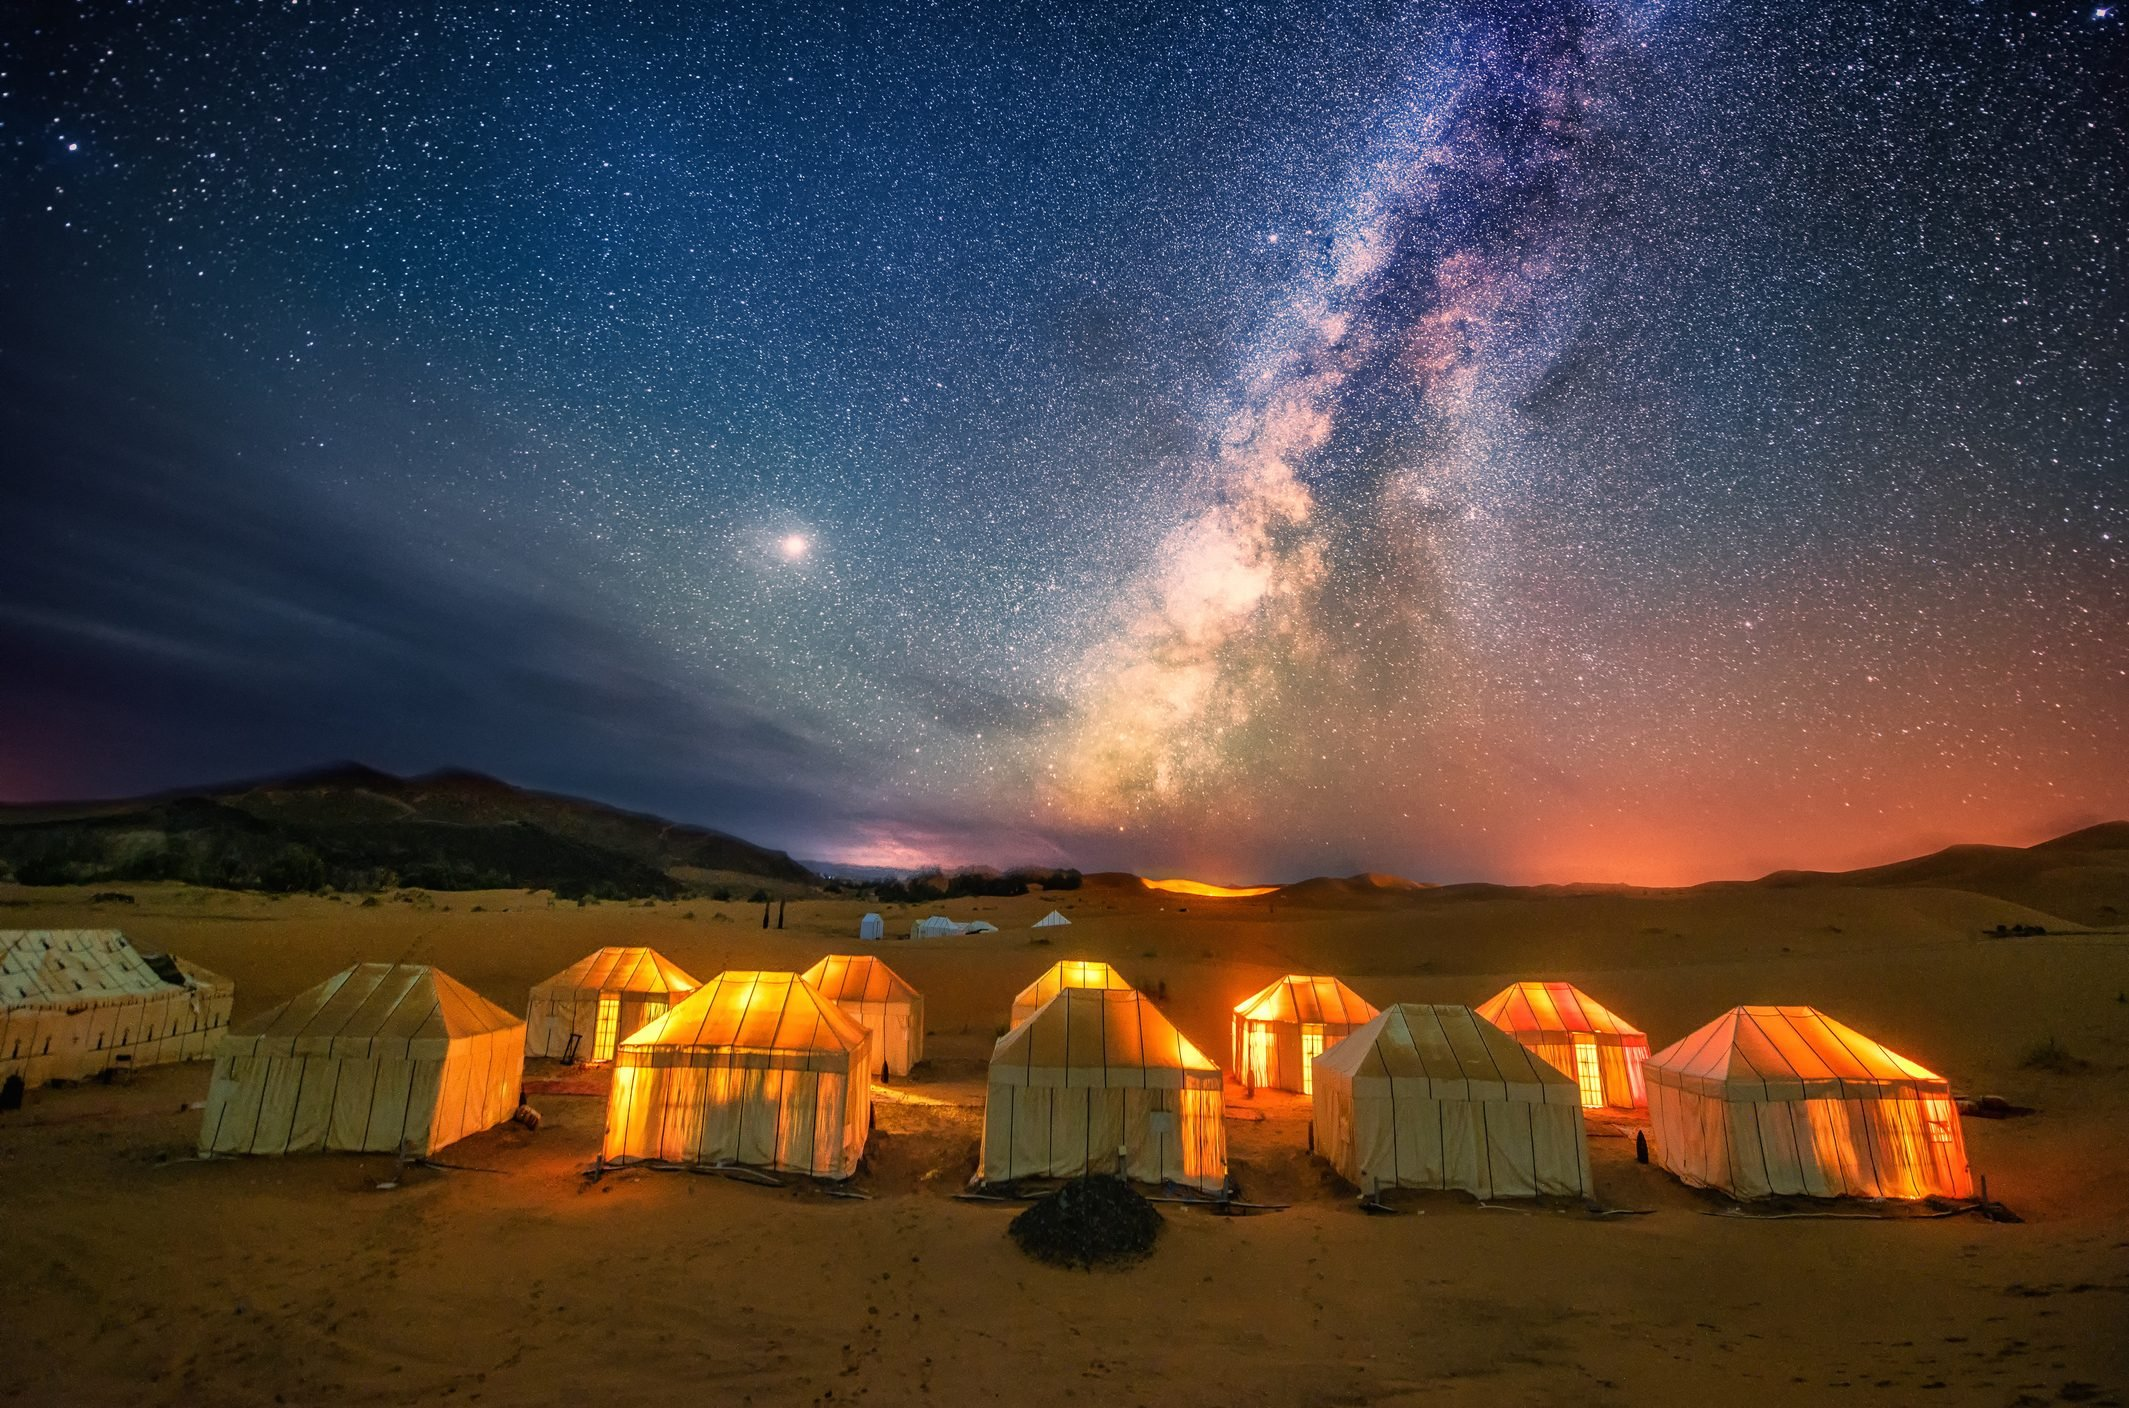 The milky way at the sahara desert in Morocco.